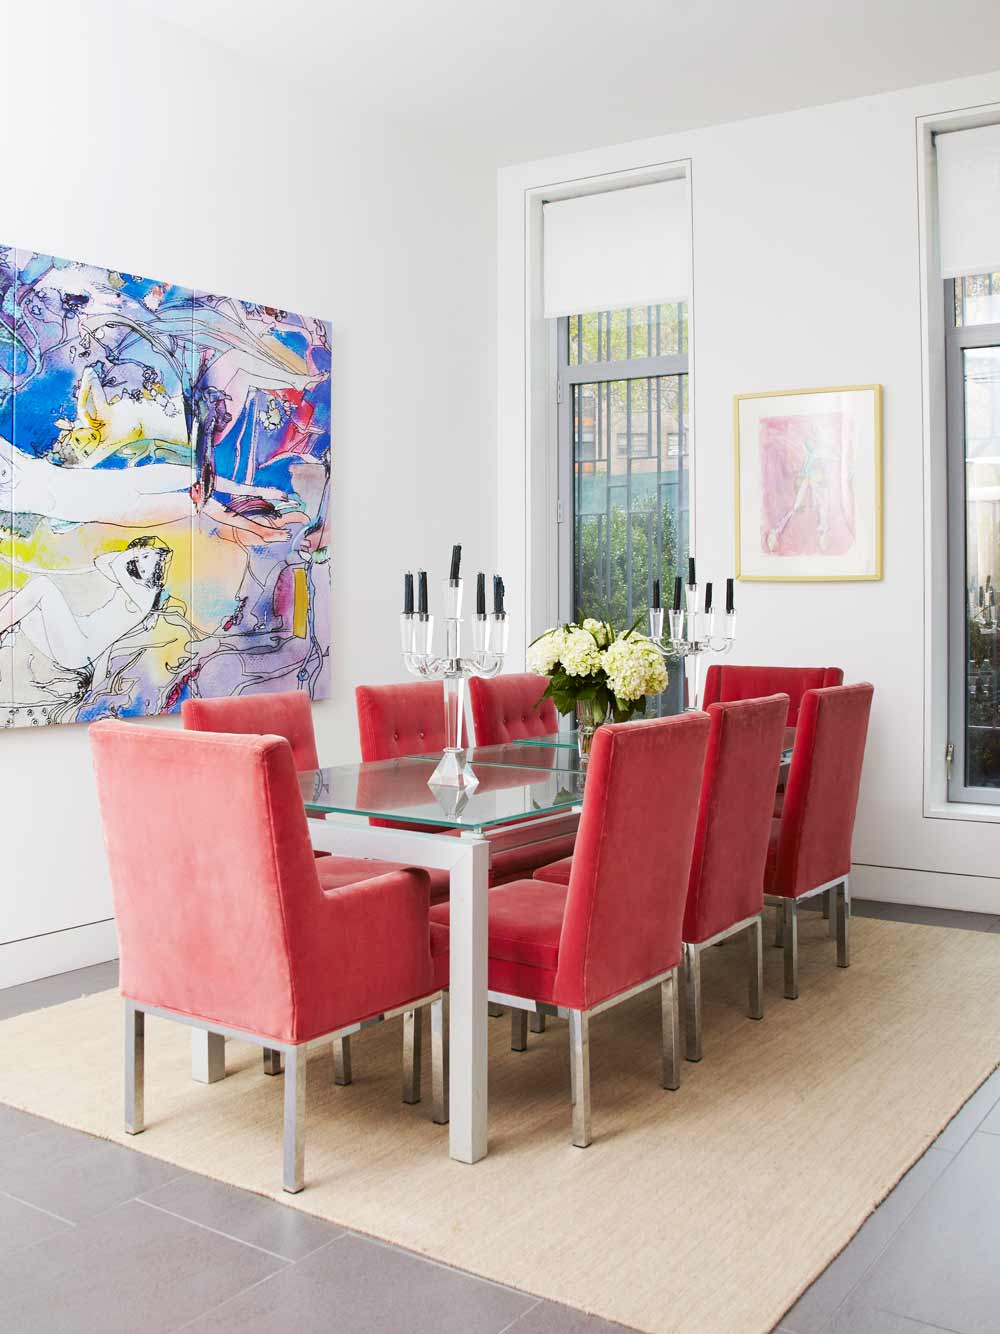 A West Chelsea Jewelry Designer Treasures Home Most of All, on Design*Sponge